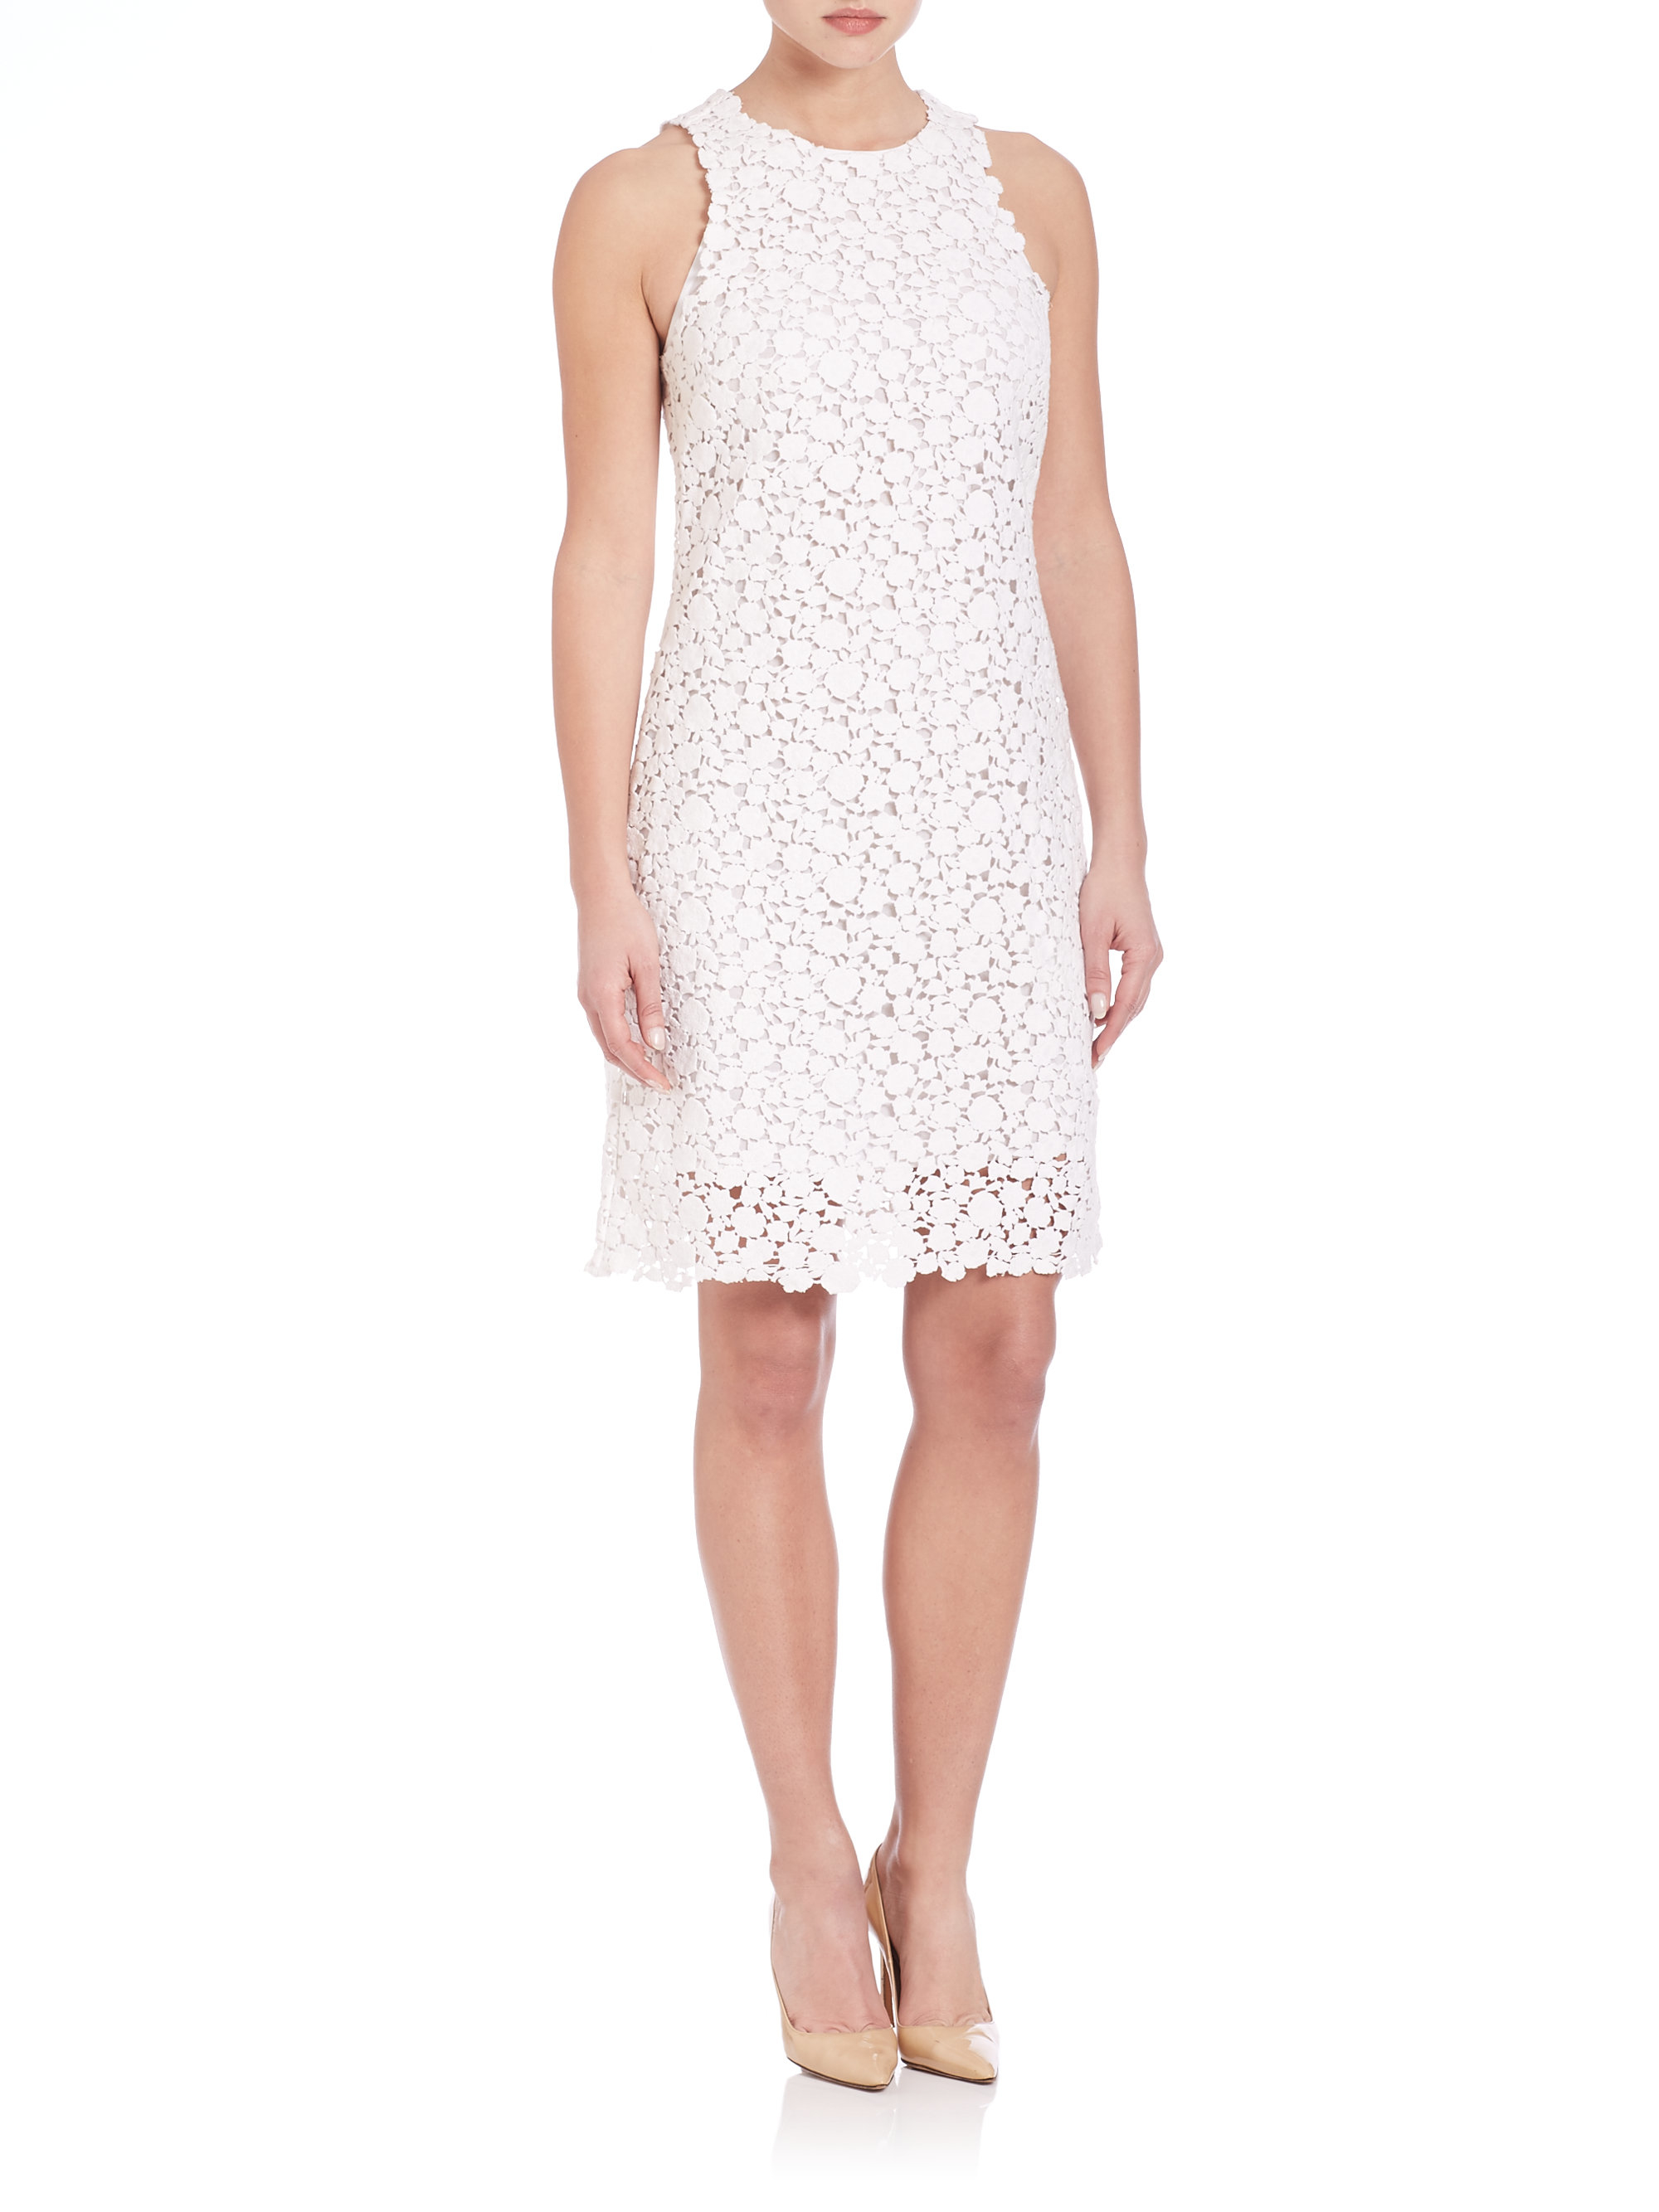 305731970d7 MICHAEL Michael Kors Sleeveless Lace Shift Dress in White - Lyst